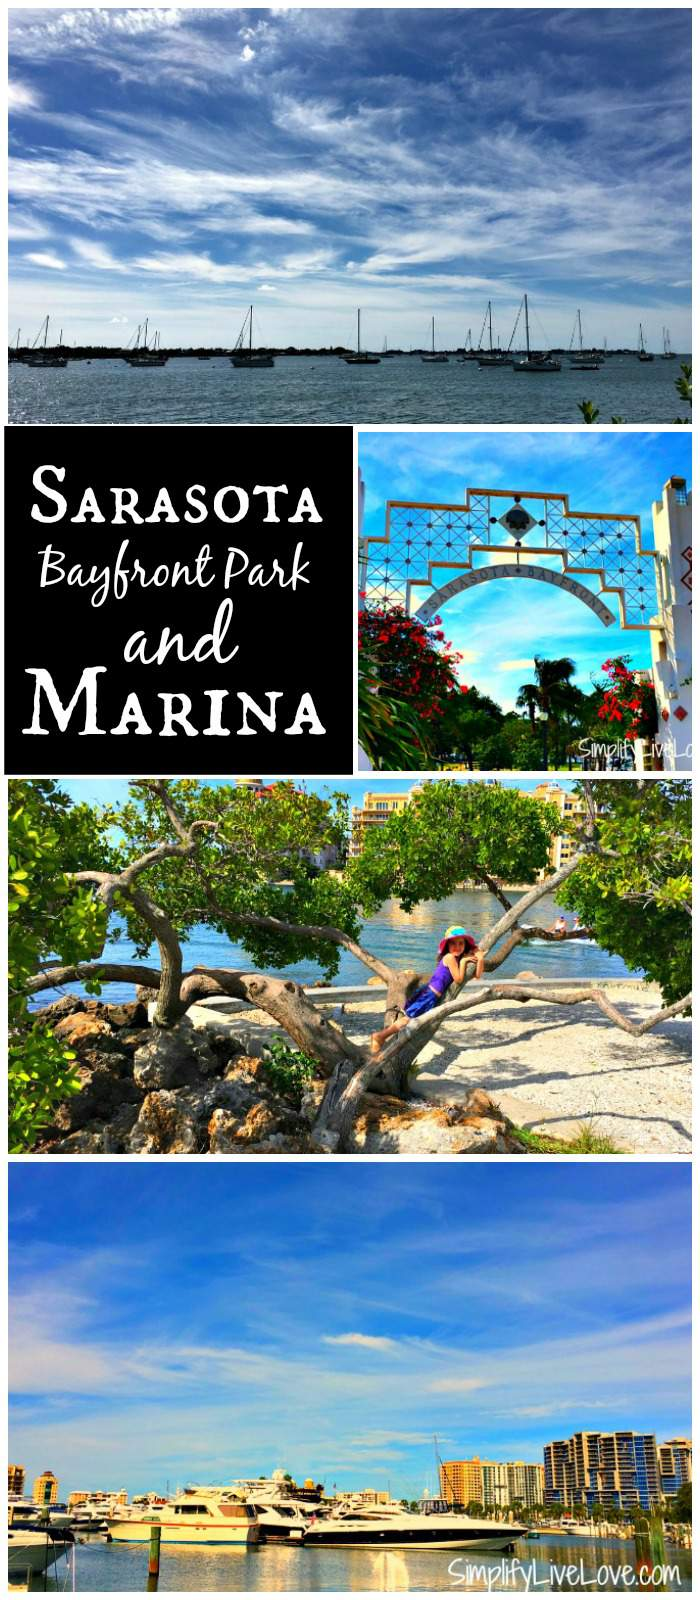 Sarasota Bayfront Park & Marina - fun place to spend the afternoon with your family or on your on.